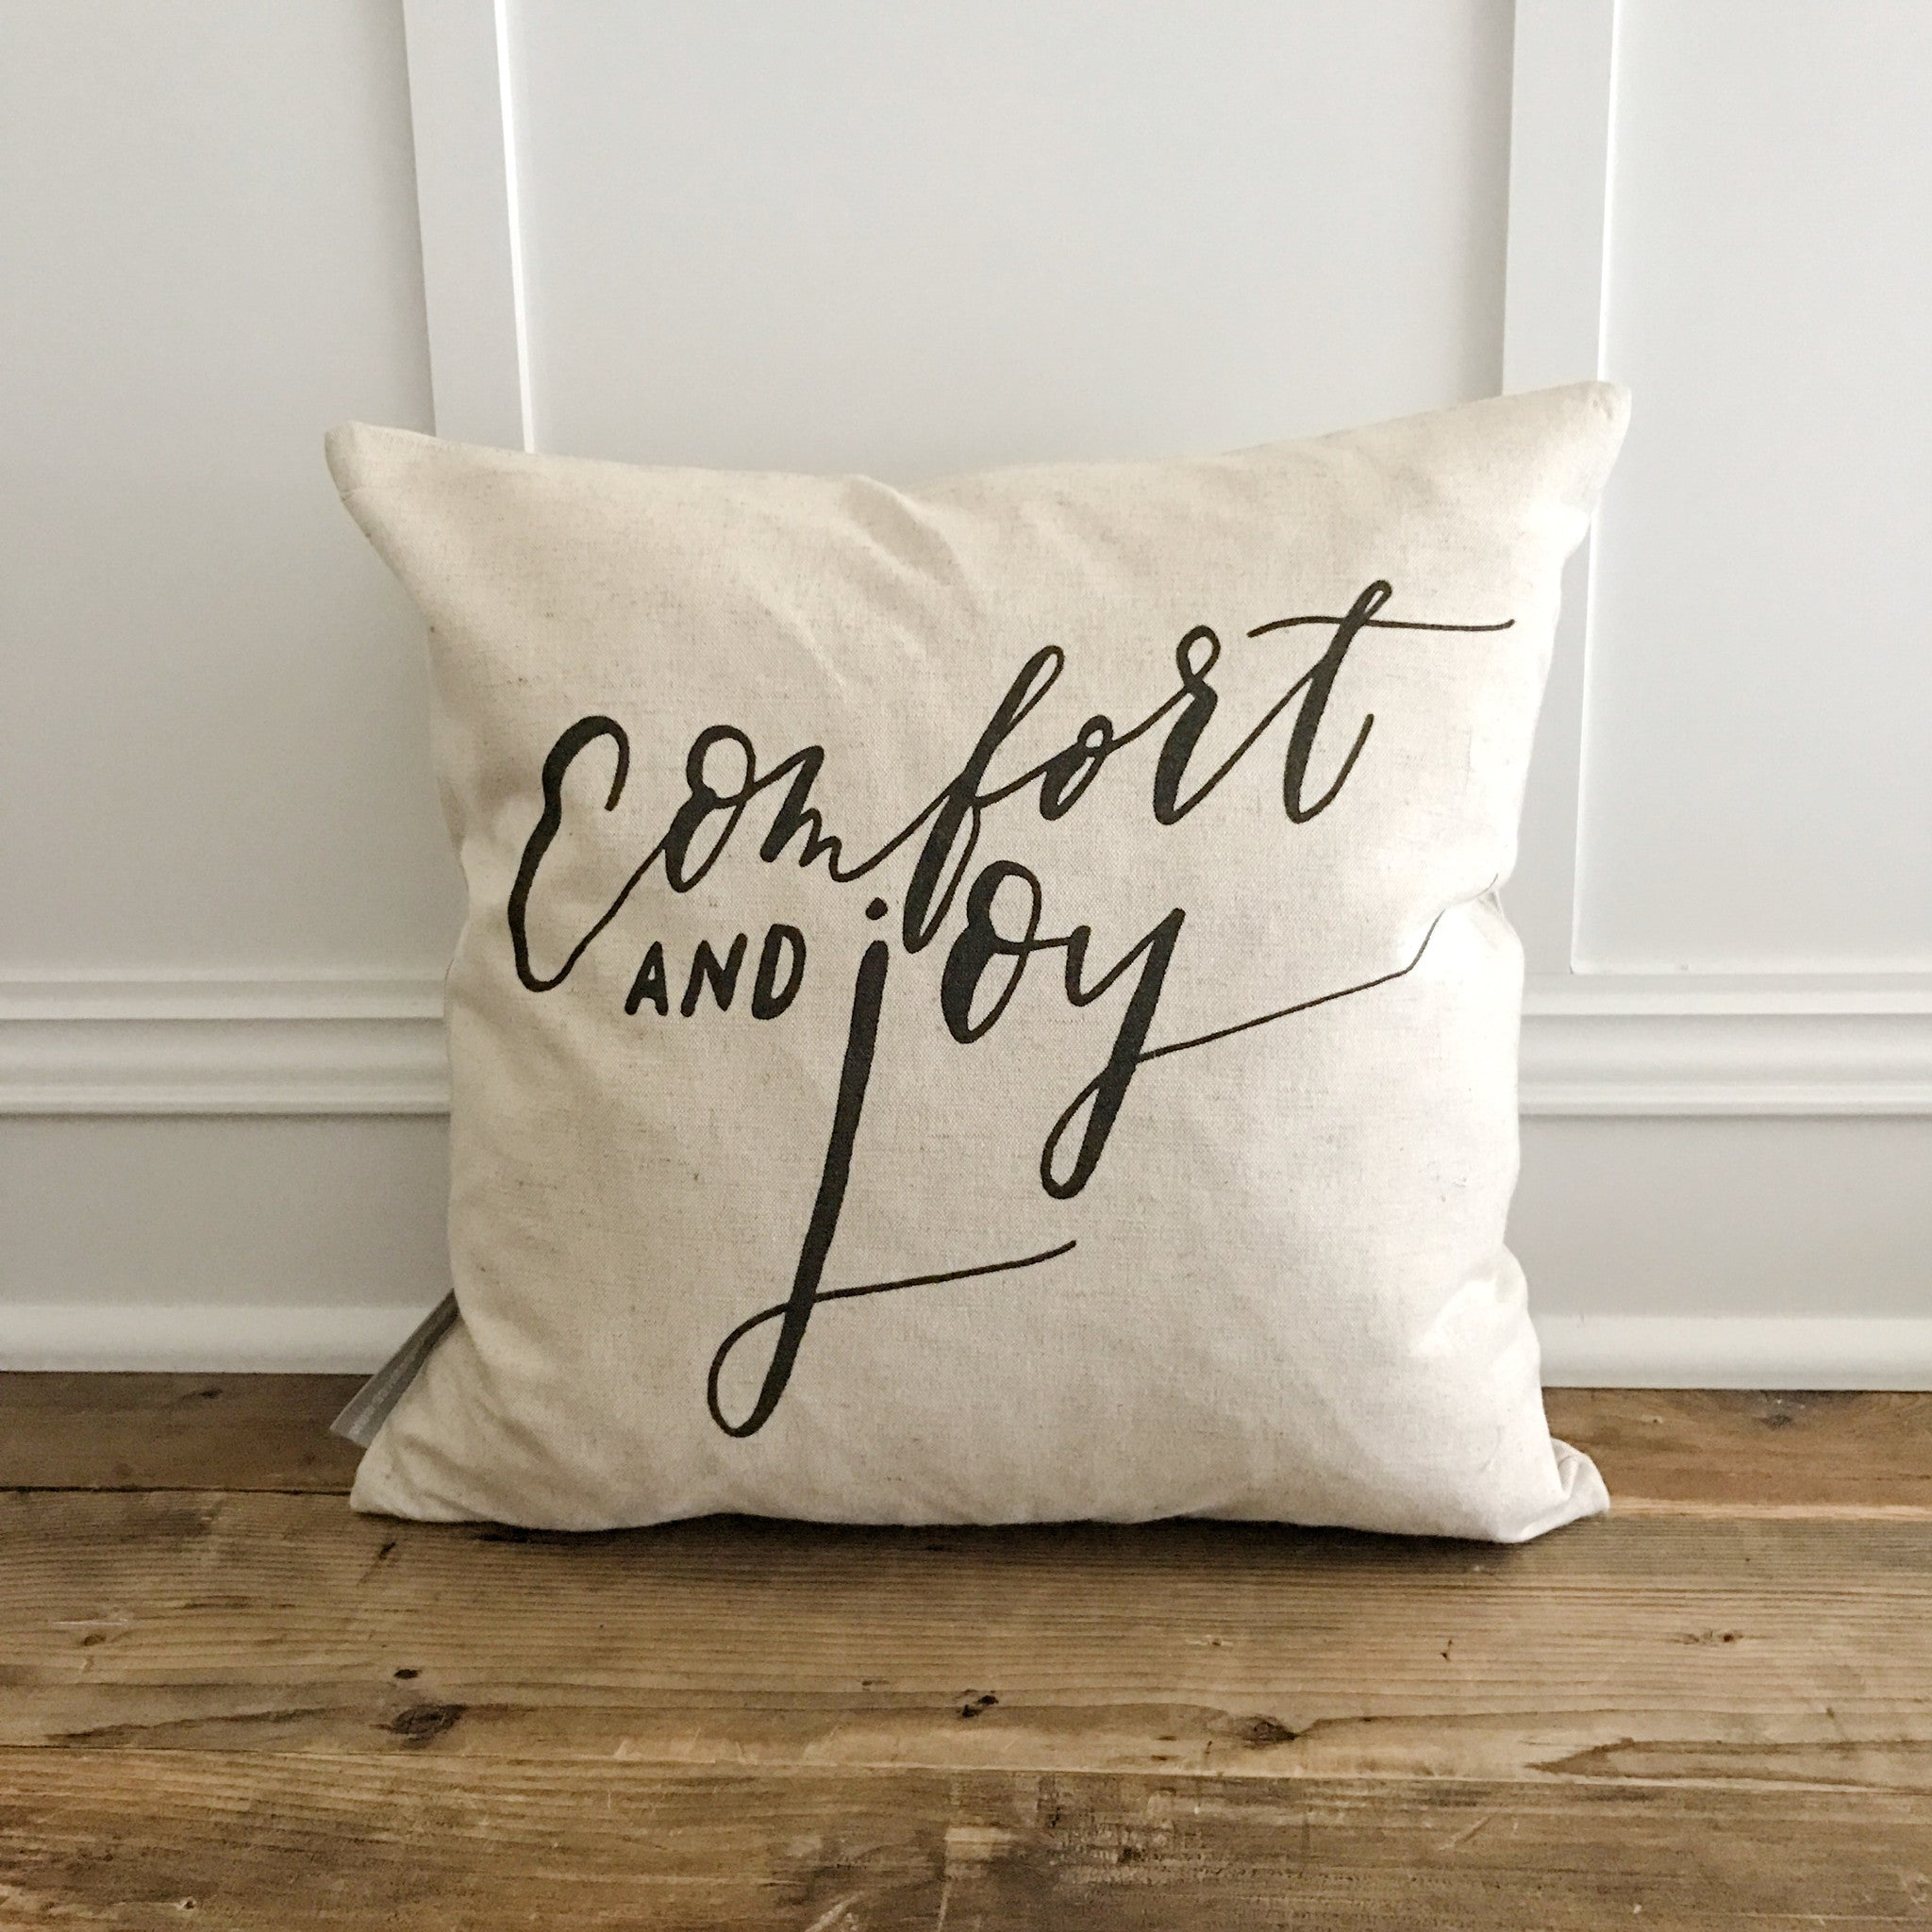 Comfort and Joy Pillow Cover - Linen and Ivory